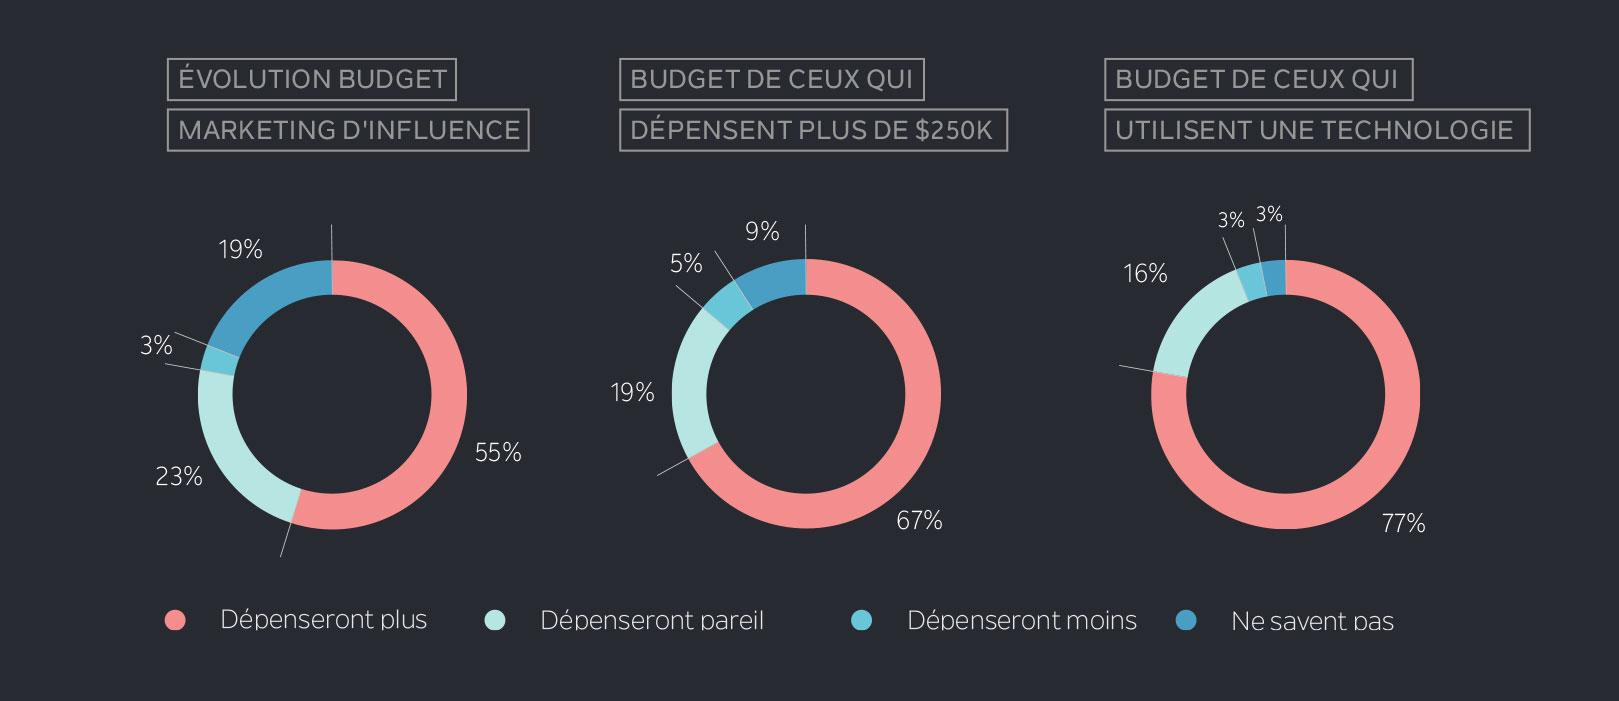 Les Tendances du Marketing d'Influence en 2017